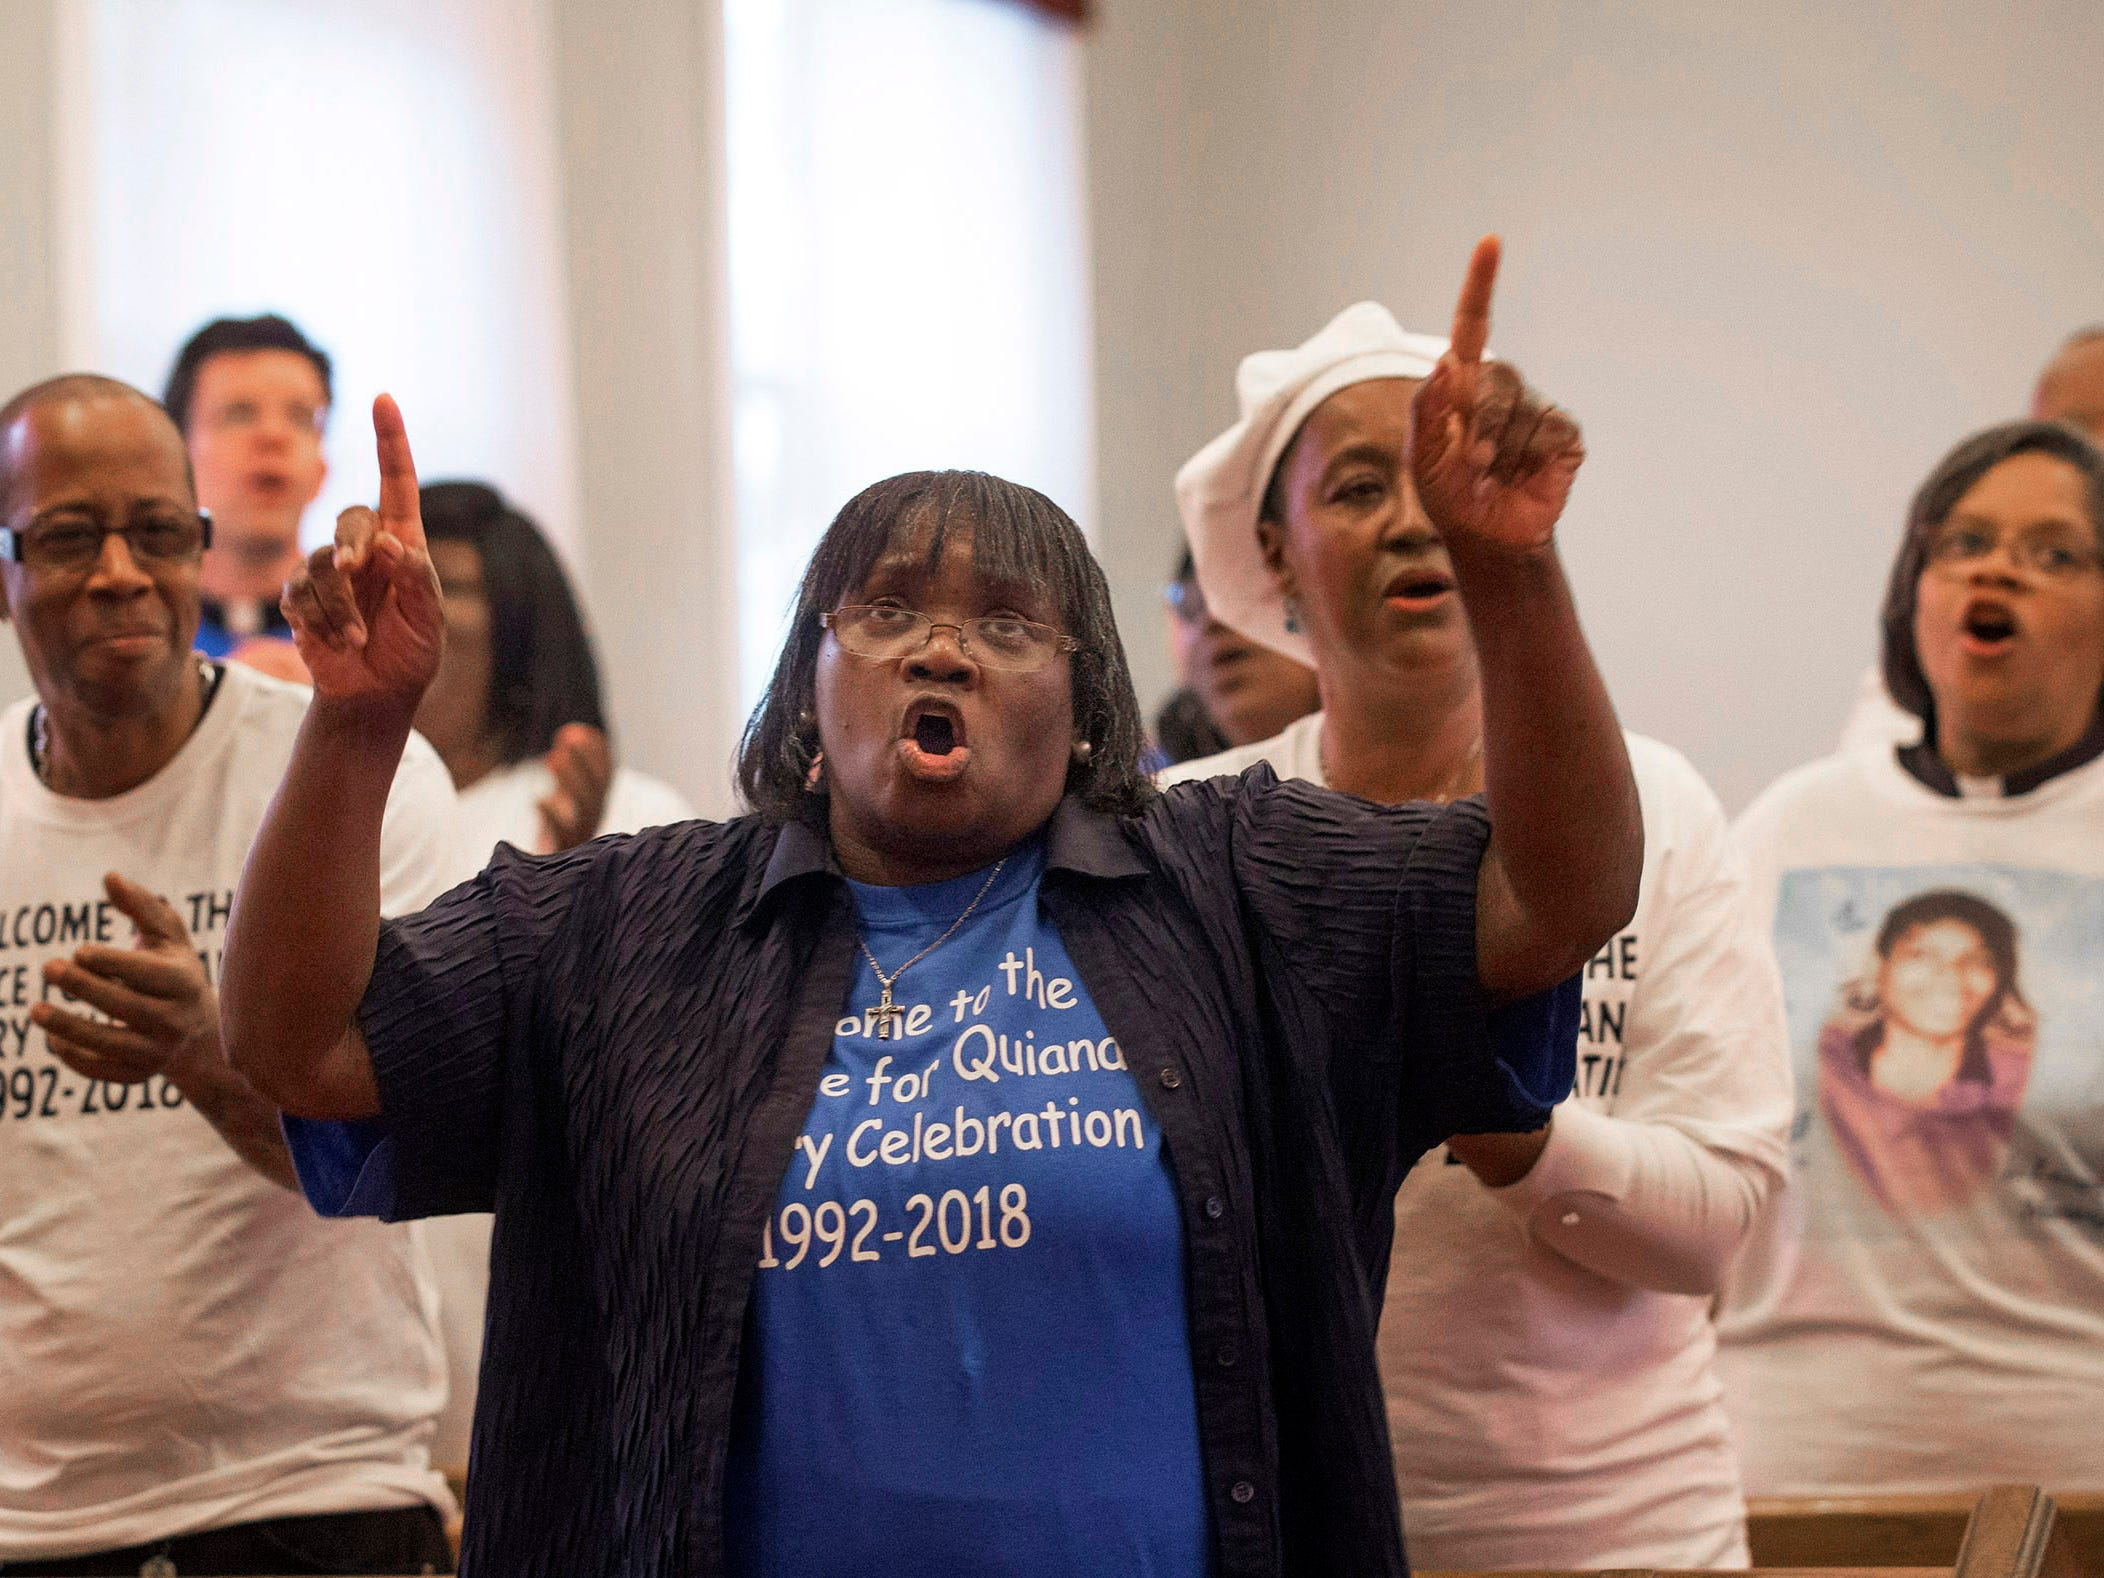 Church member sing during celebration service. Every year Penny Dees held a march asking for justice for her daughter who was murdered in 1992. With the murderer found, and charged but still not convicted, Penny decided to hold a victory celebration instead. With the rain, she held the event at her church, the Asbury Park Deliverence Center.